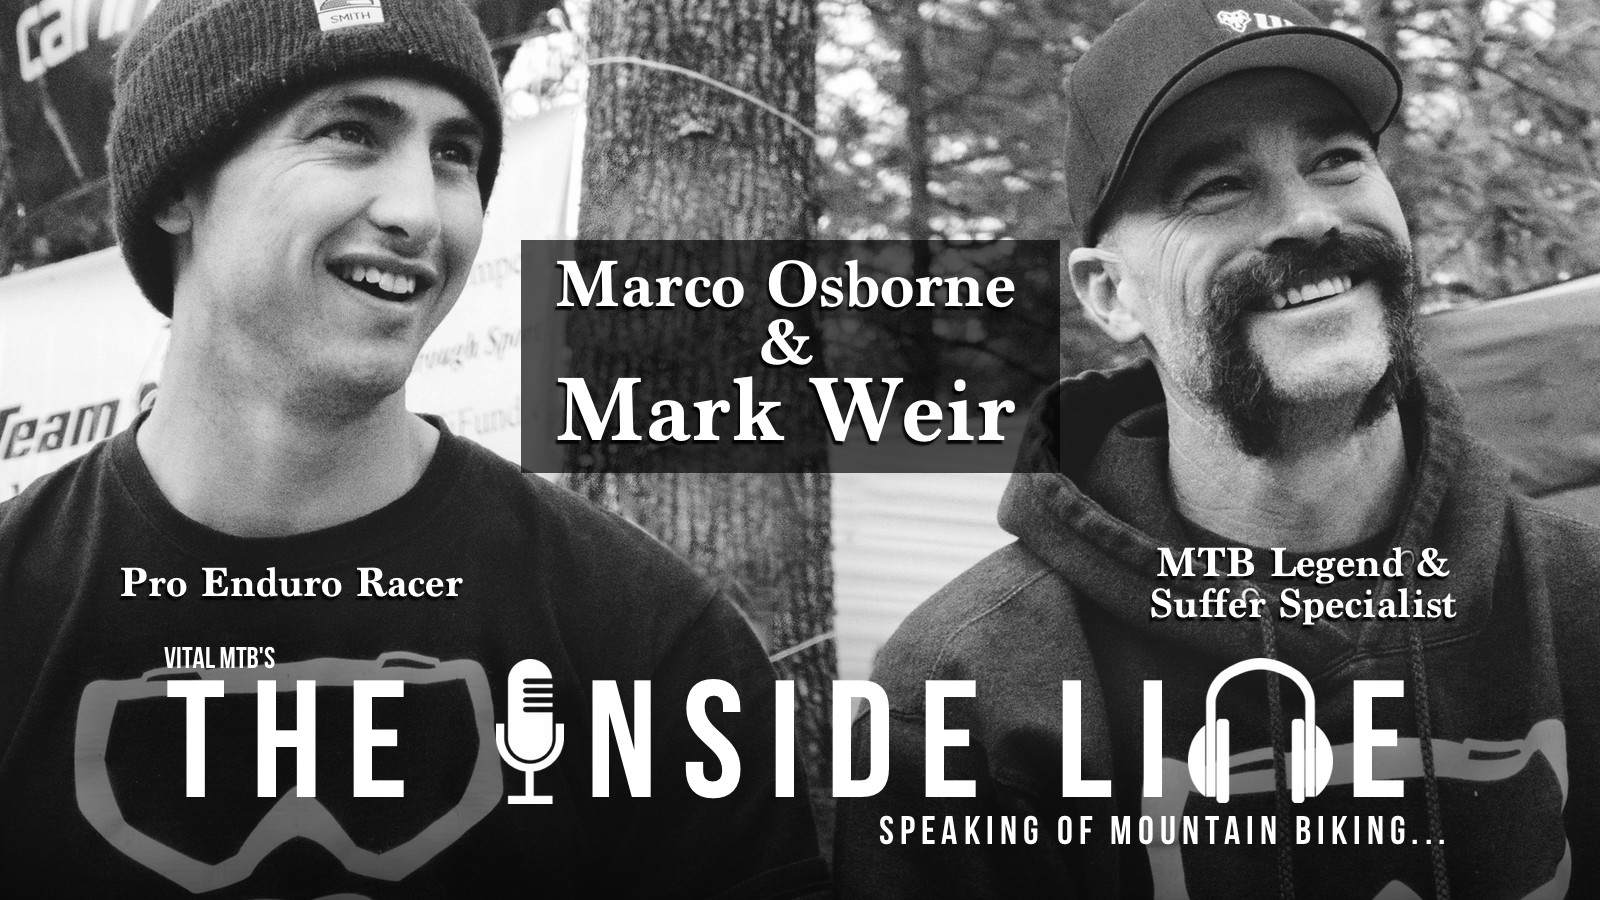 The Inside Line Podcast - Mark Weir and Marco Osborne